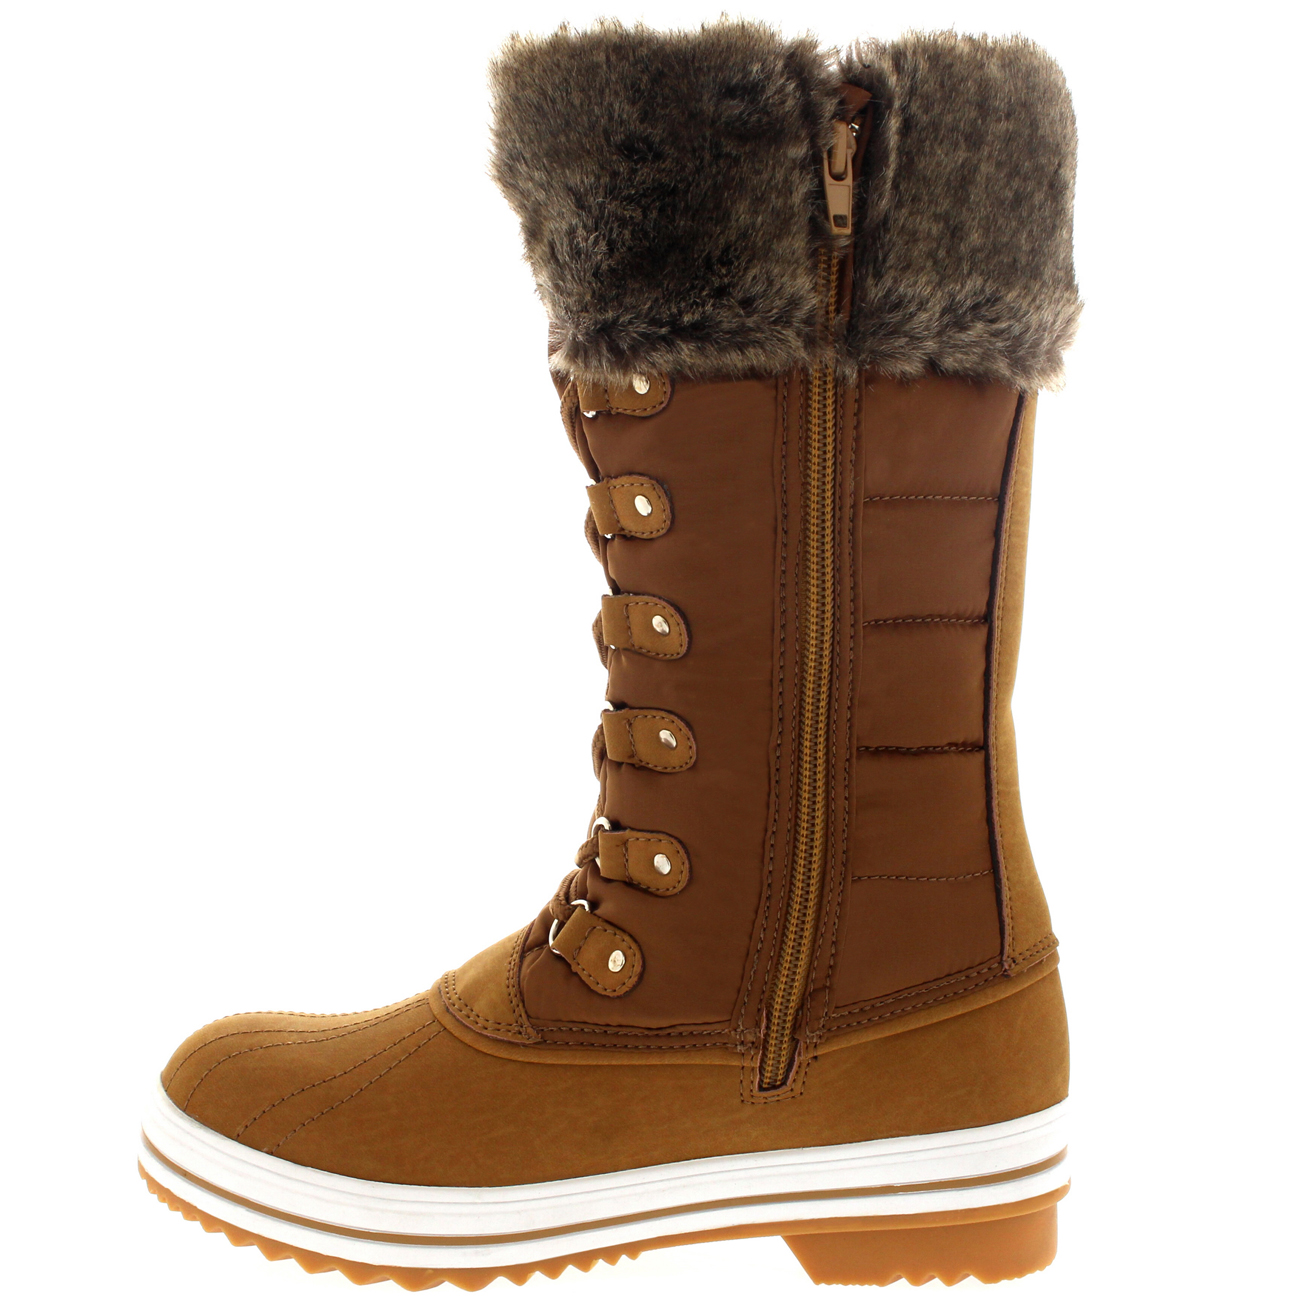 Womens Nylon Warm Side Zip Fur Duck Muck Lace Up Rain